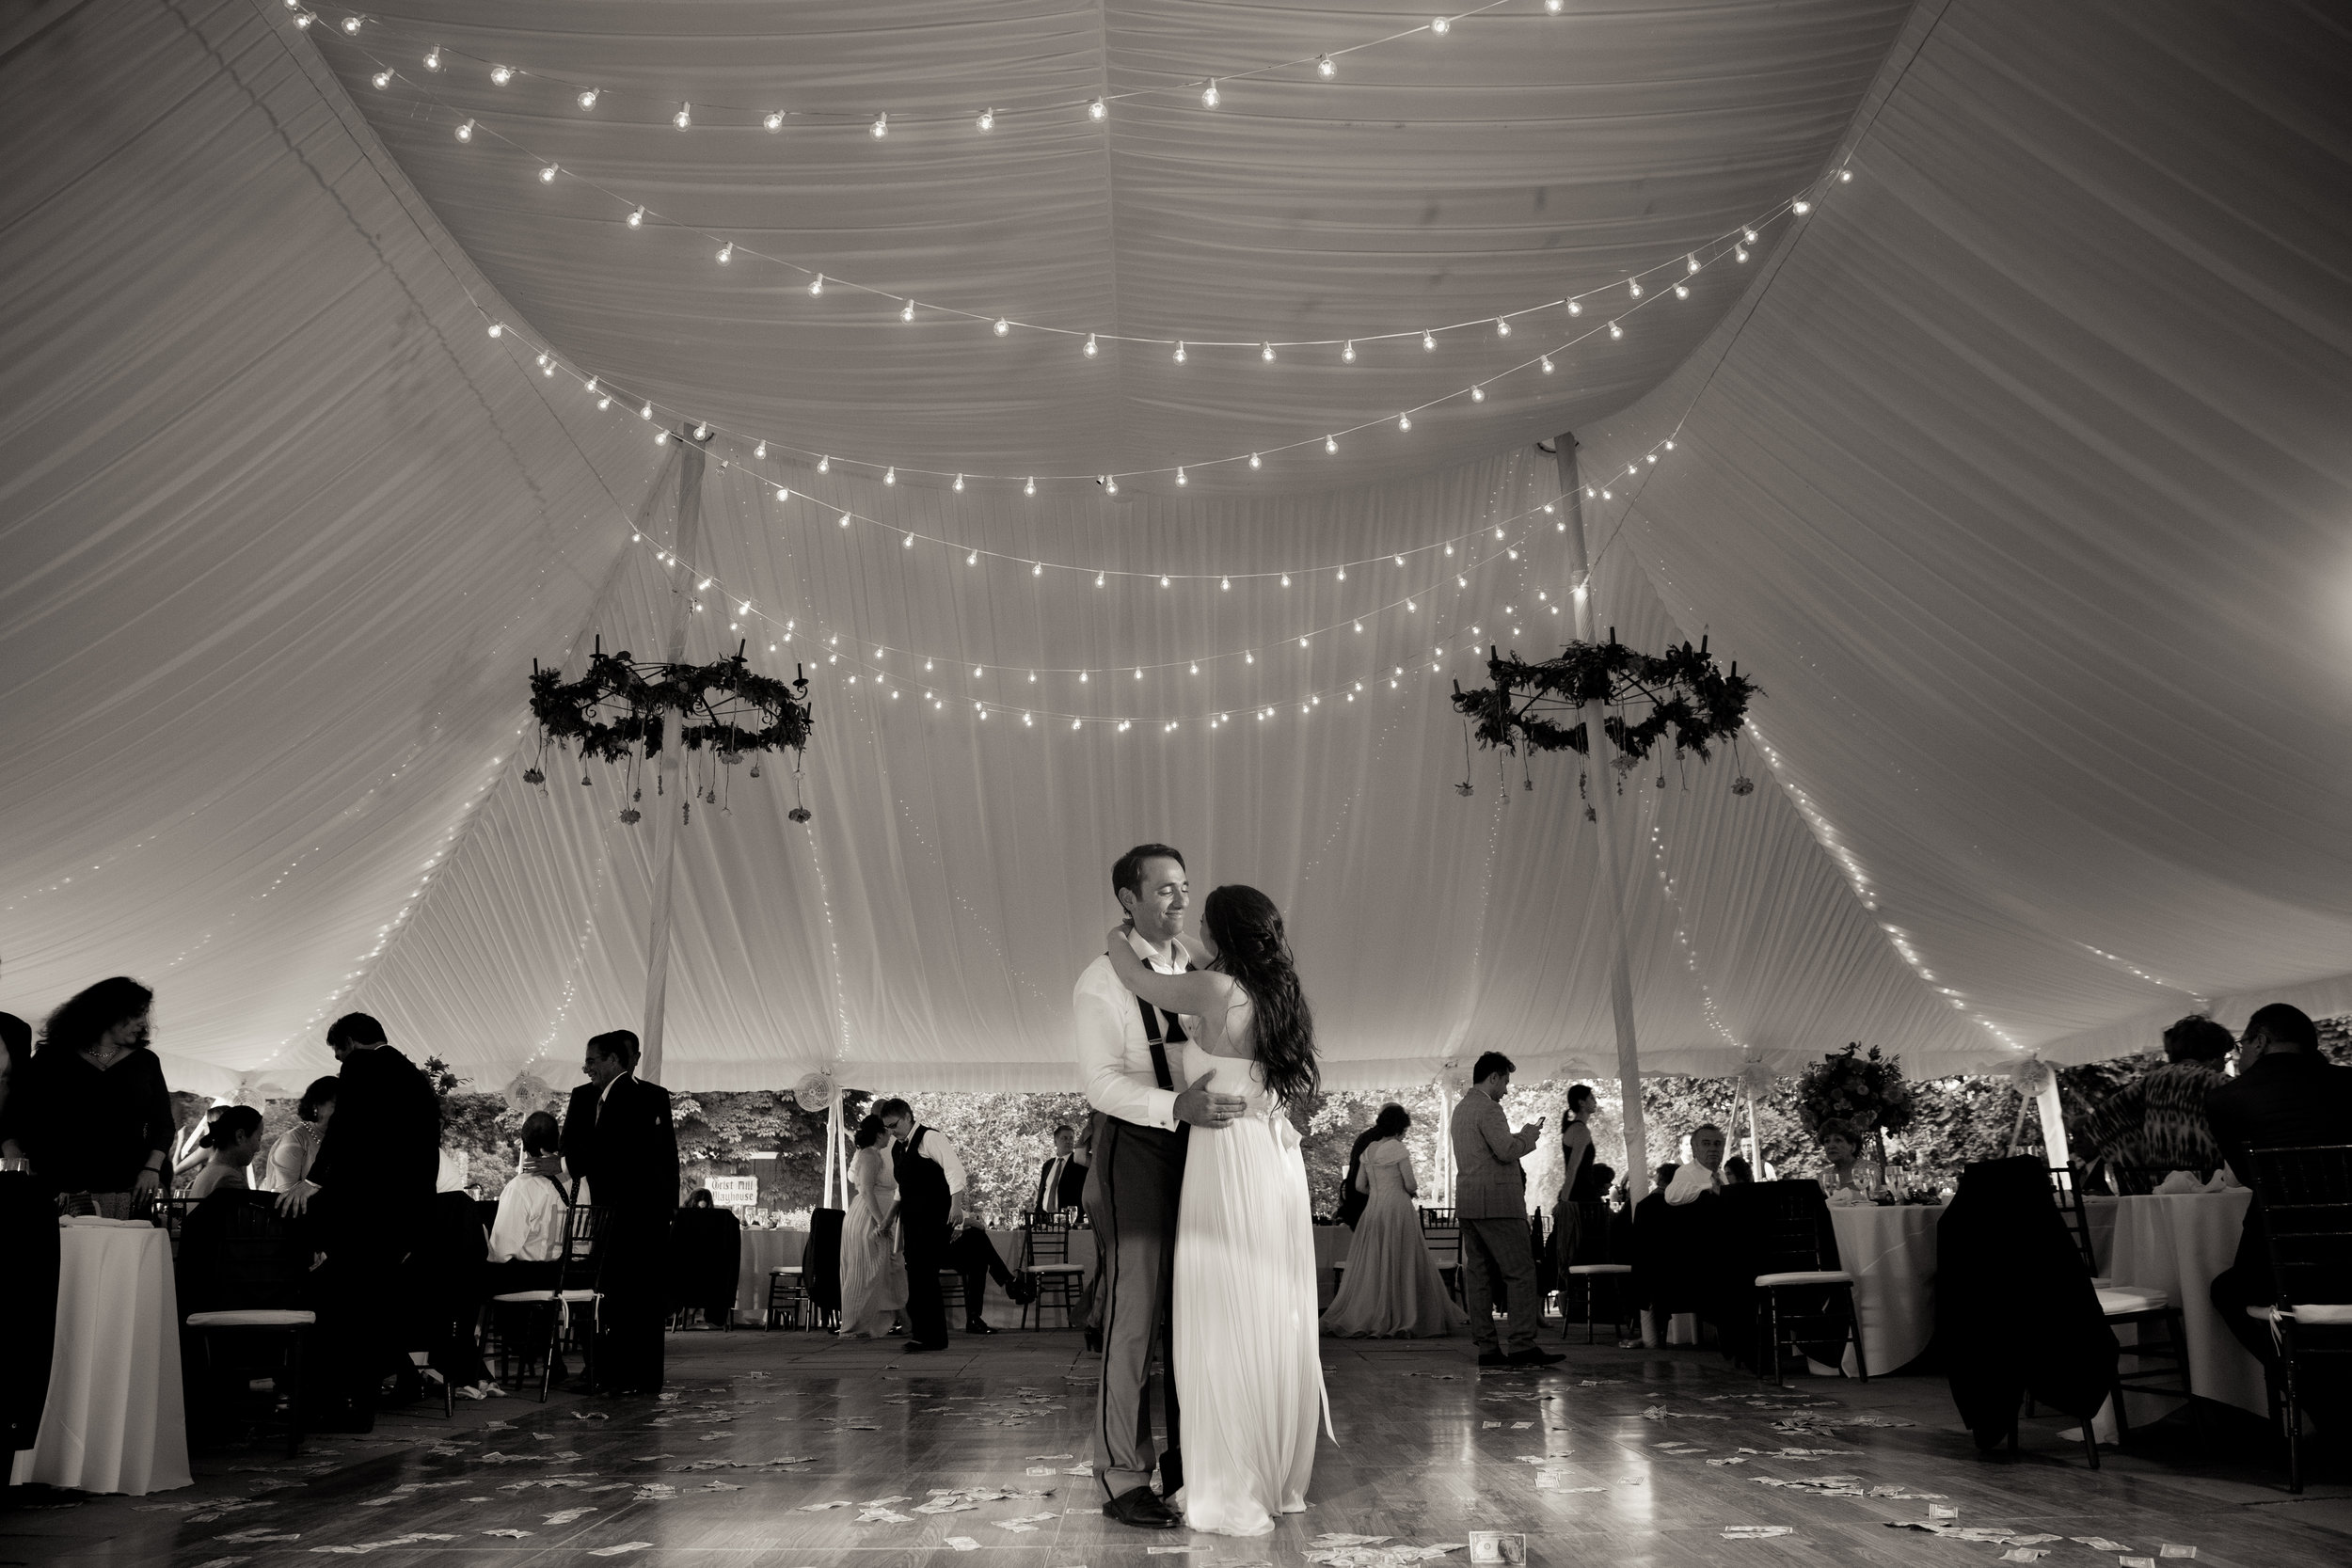 Tent wedding inspiration